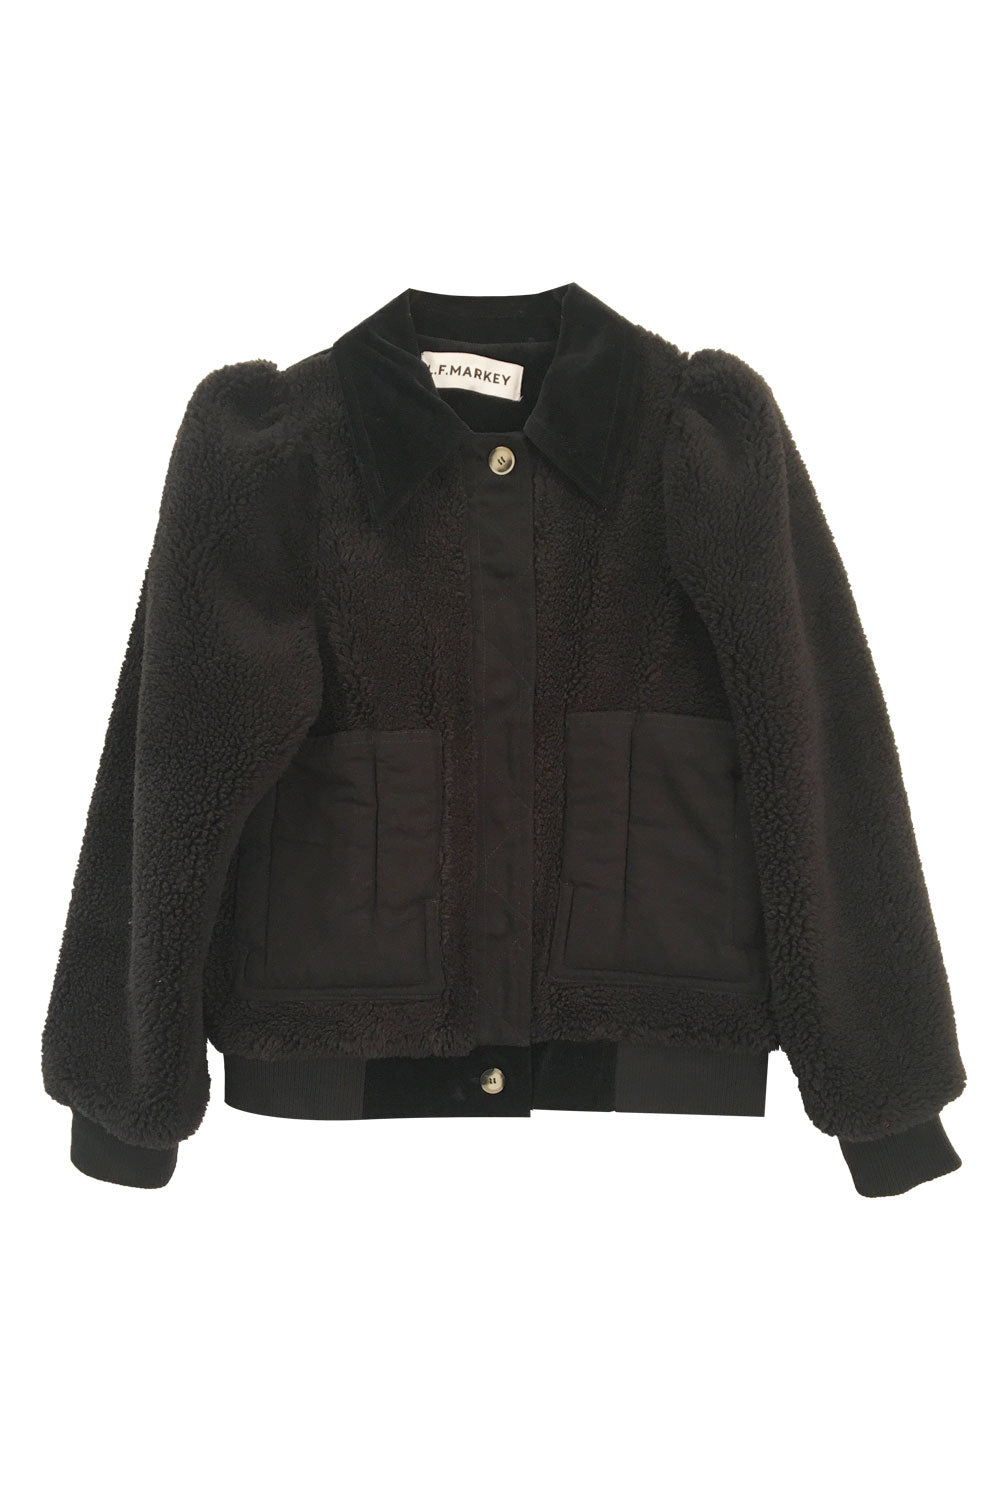 Lawrence Coat Black